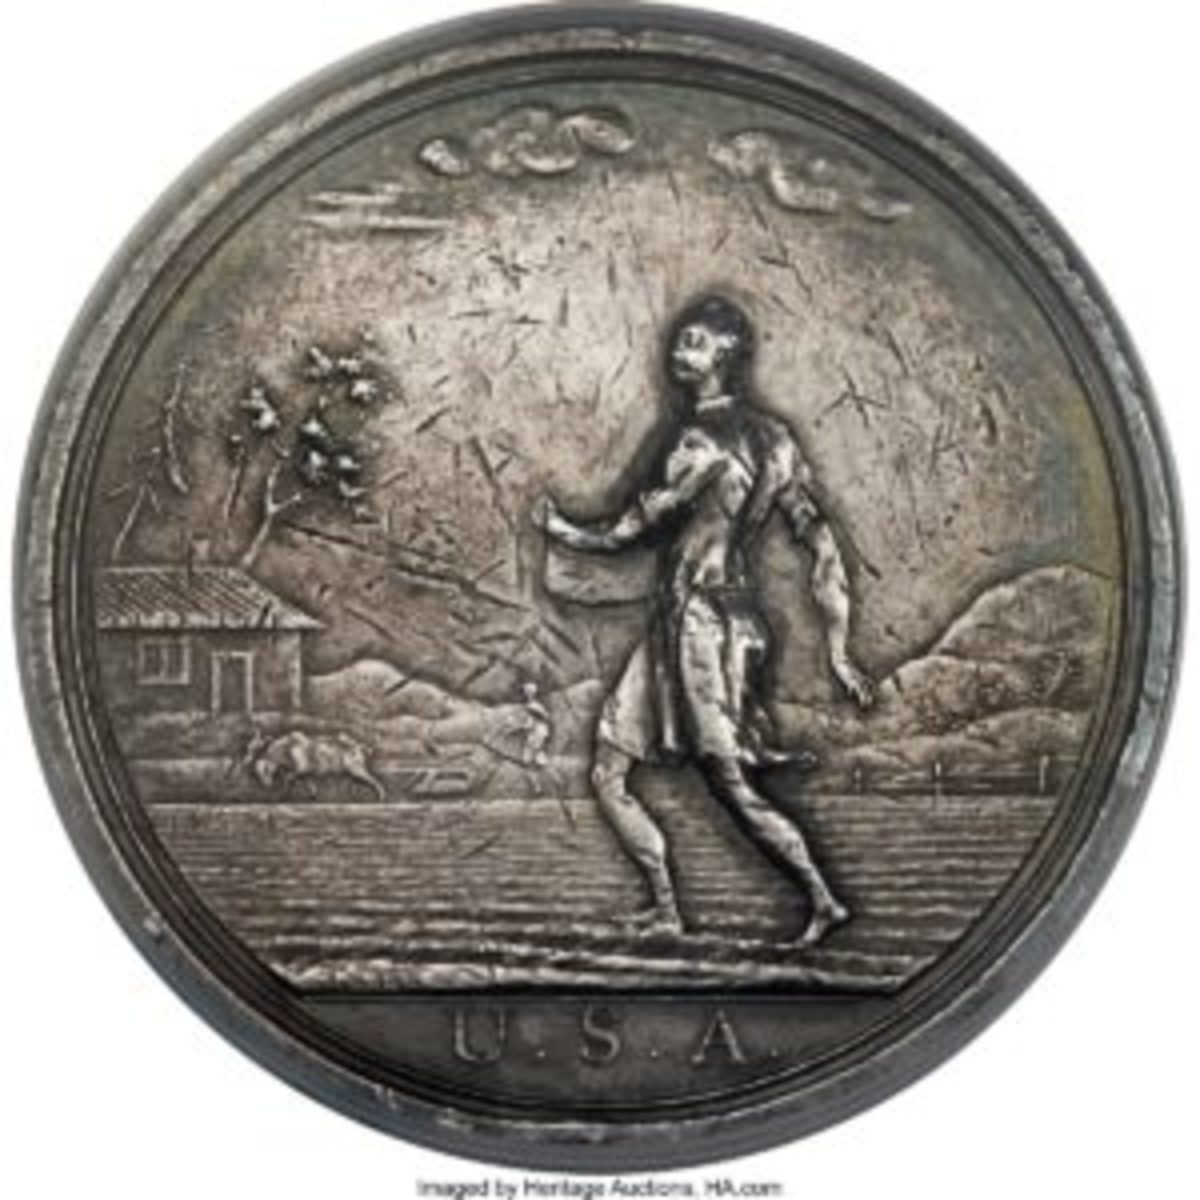 "A 1796 George Washington ""Seasons"" Indian Peace Medal, The Farmer, $23,500. In October 1796, Washington's third Secretary of War, James McHenry, ordered Seasons medals in silver and copper, as the first Indian peace medals struck for the United States."